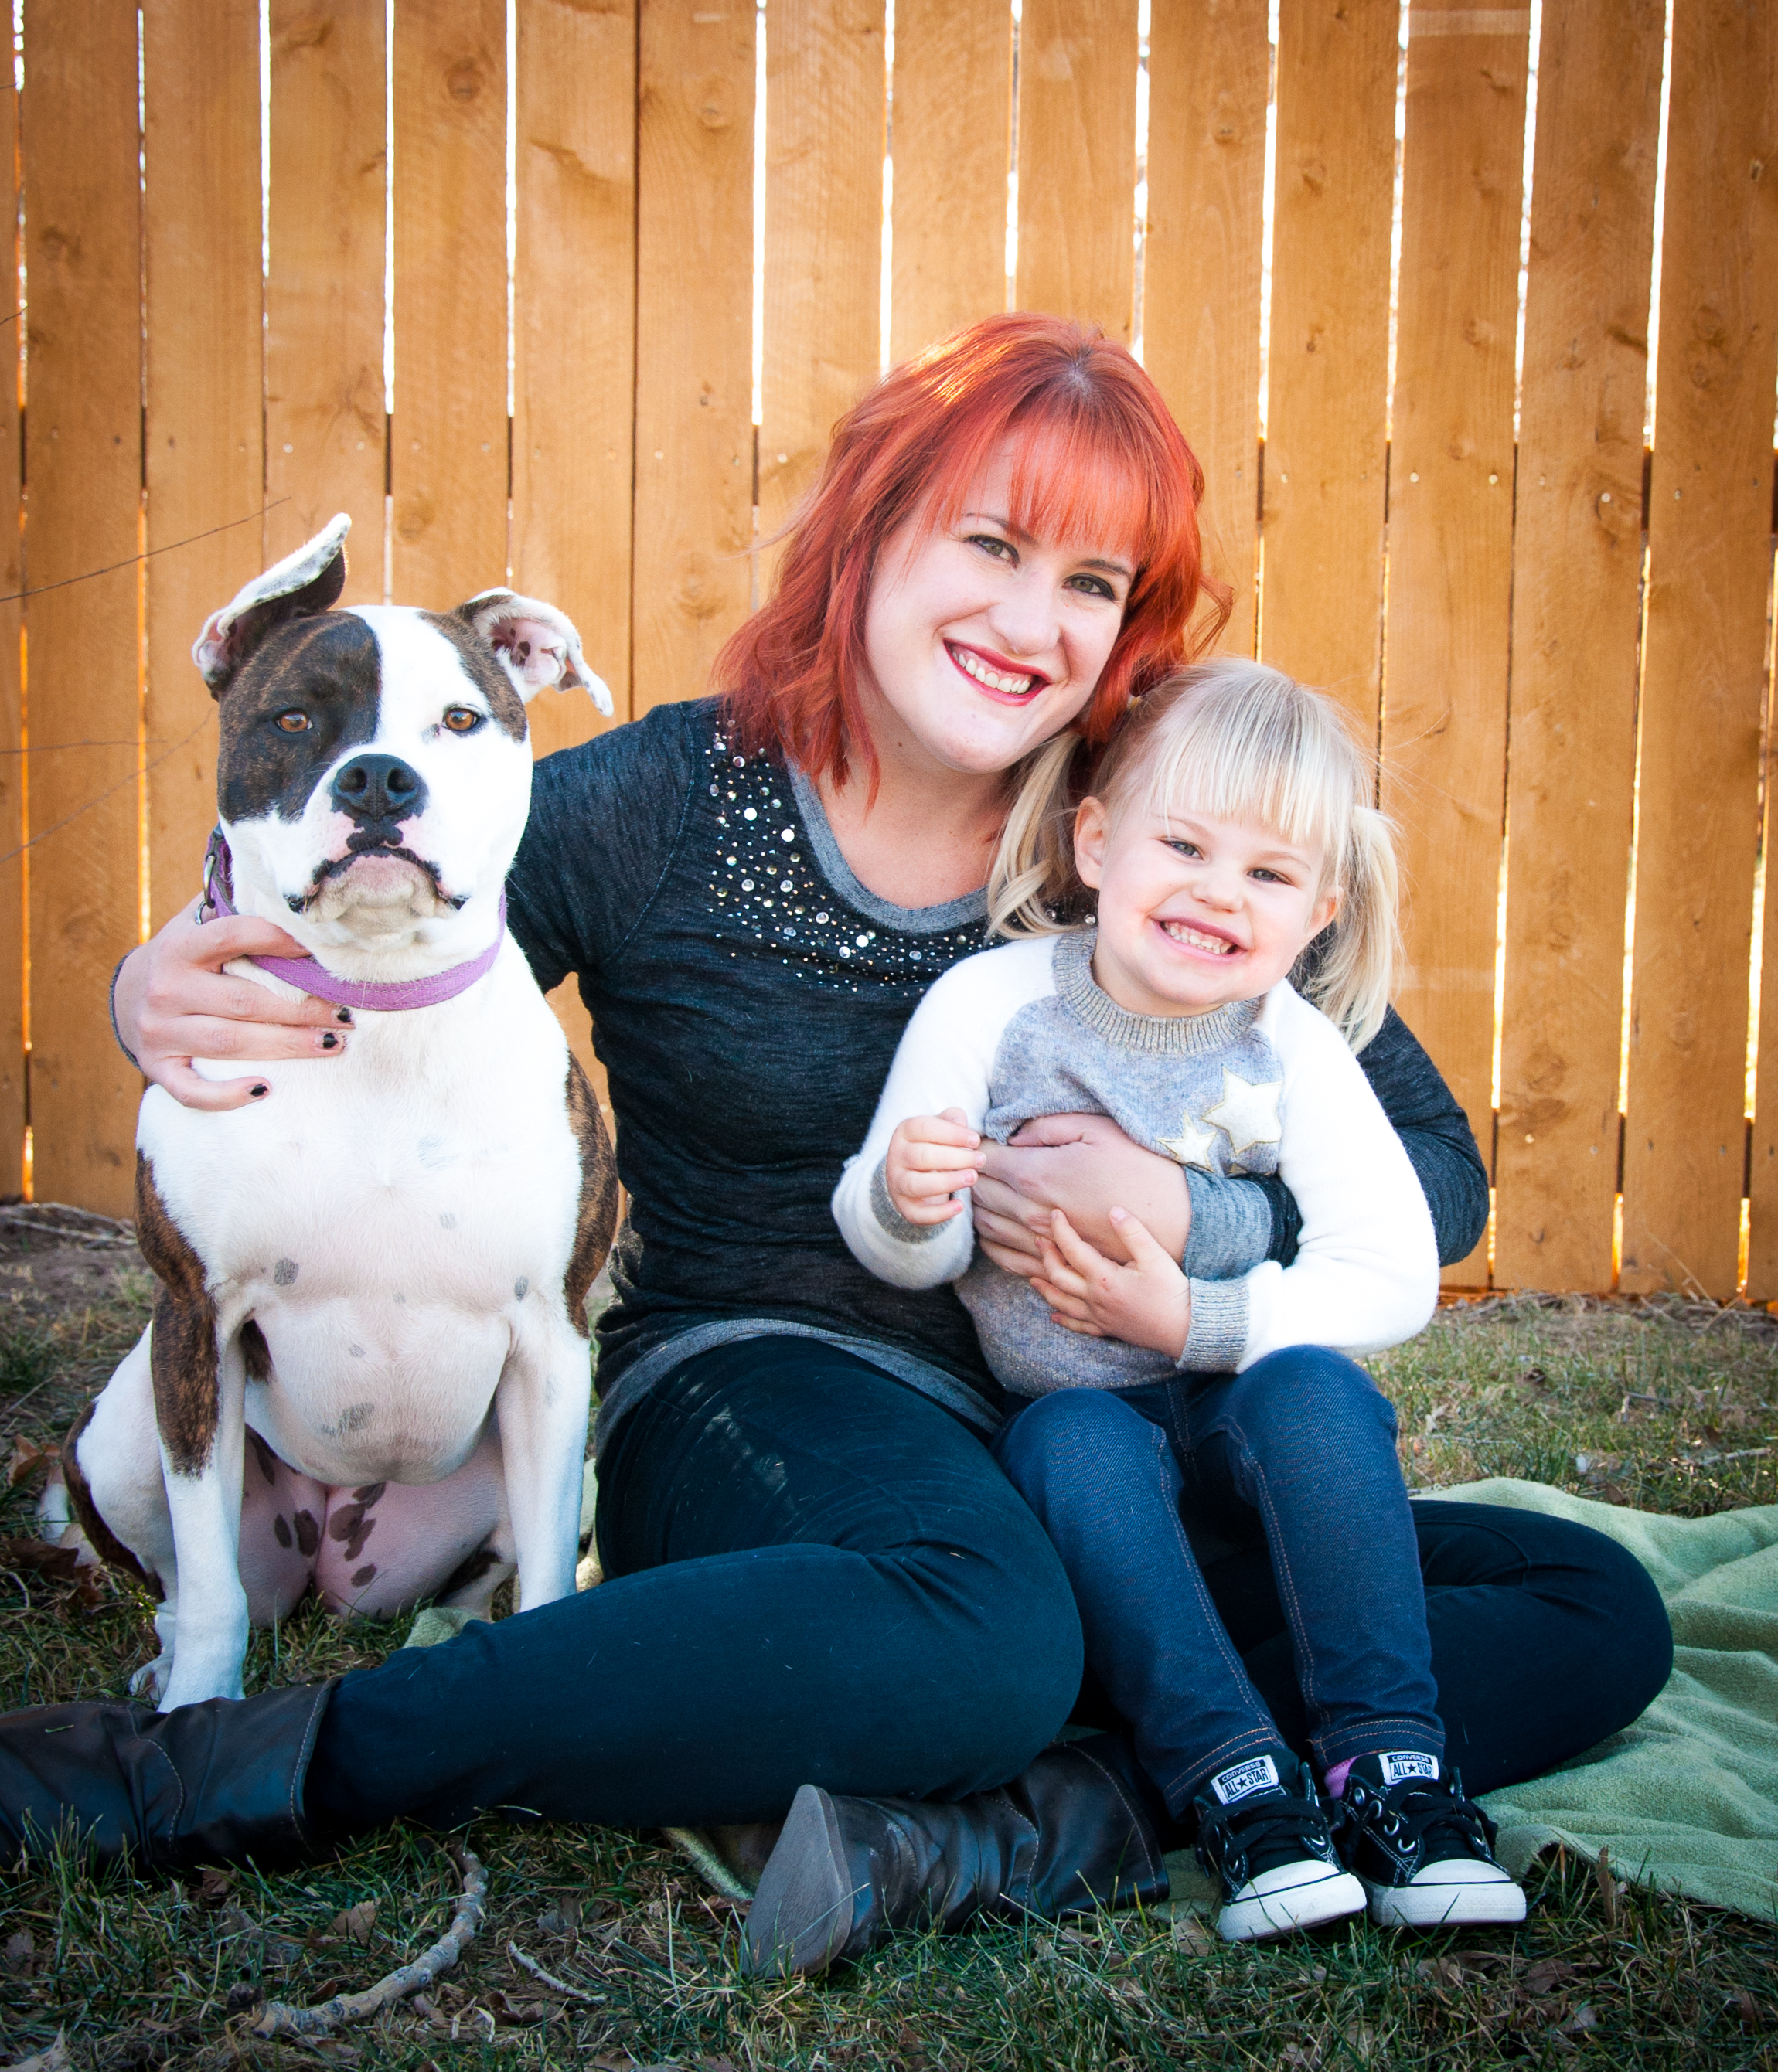 Molly and her daughter Ivy, and their dog, Mia